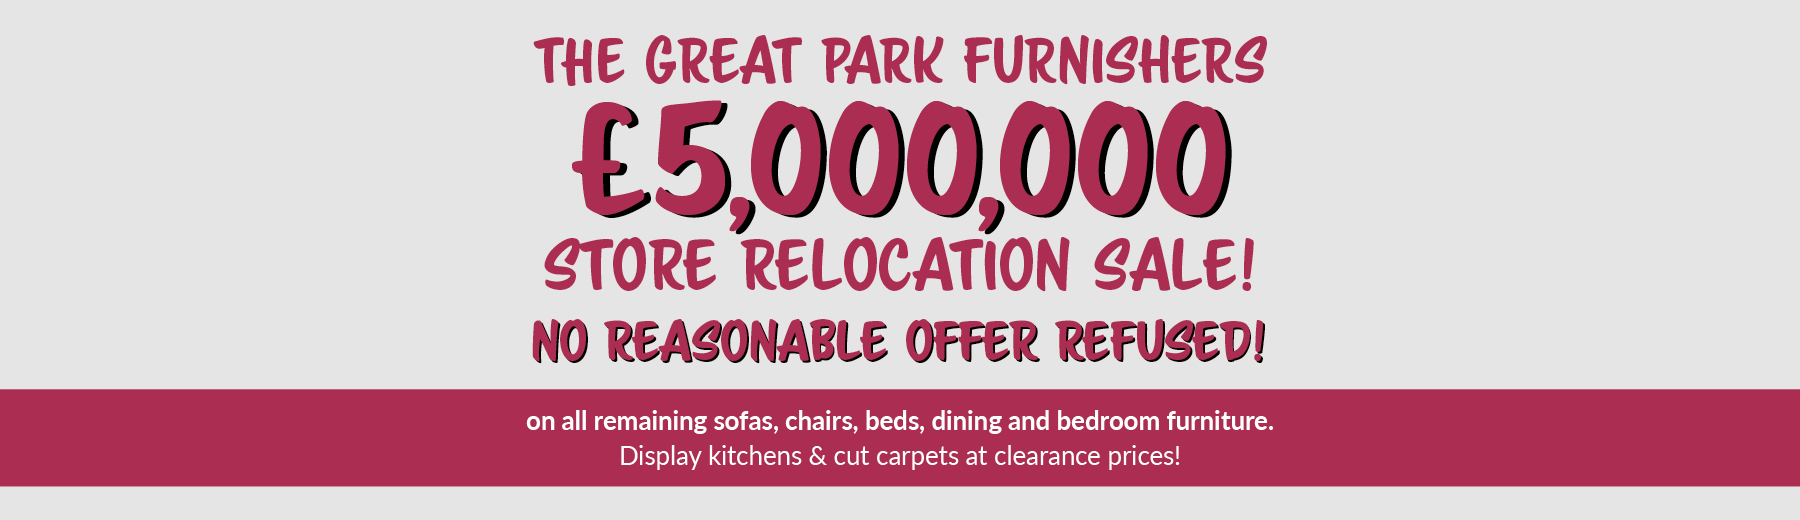 Park Furnishers Store Relocation